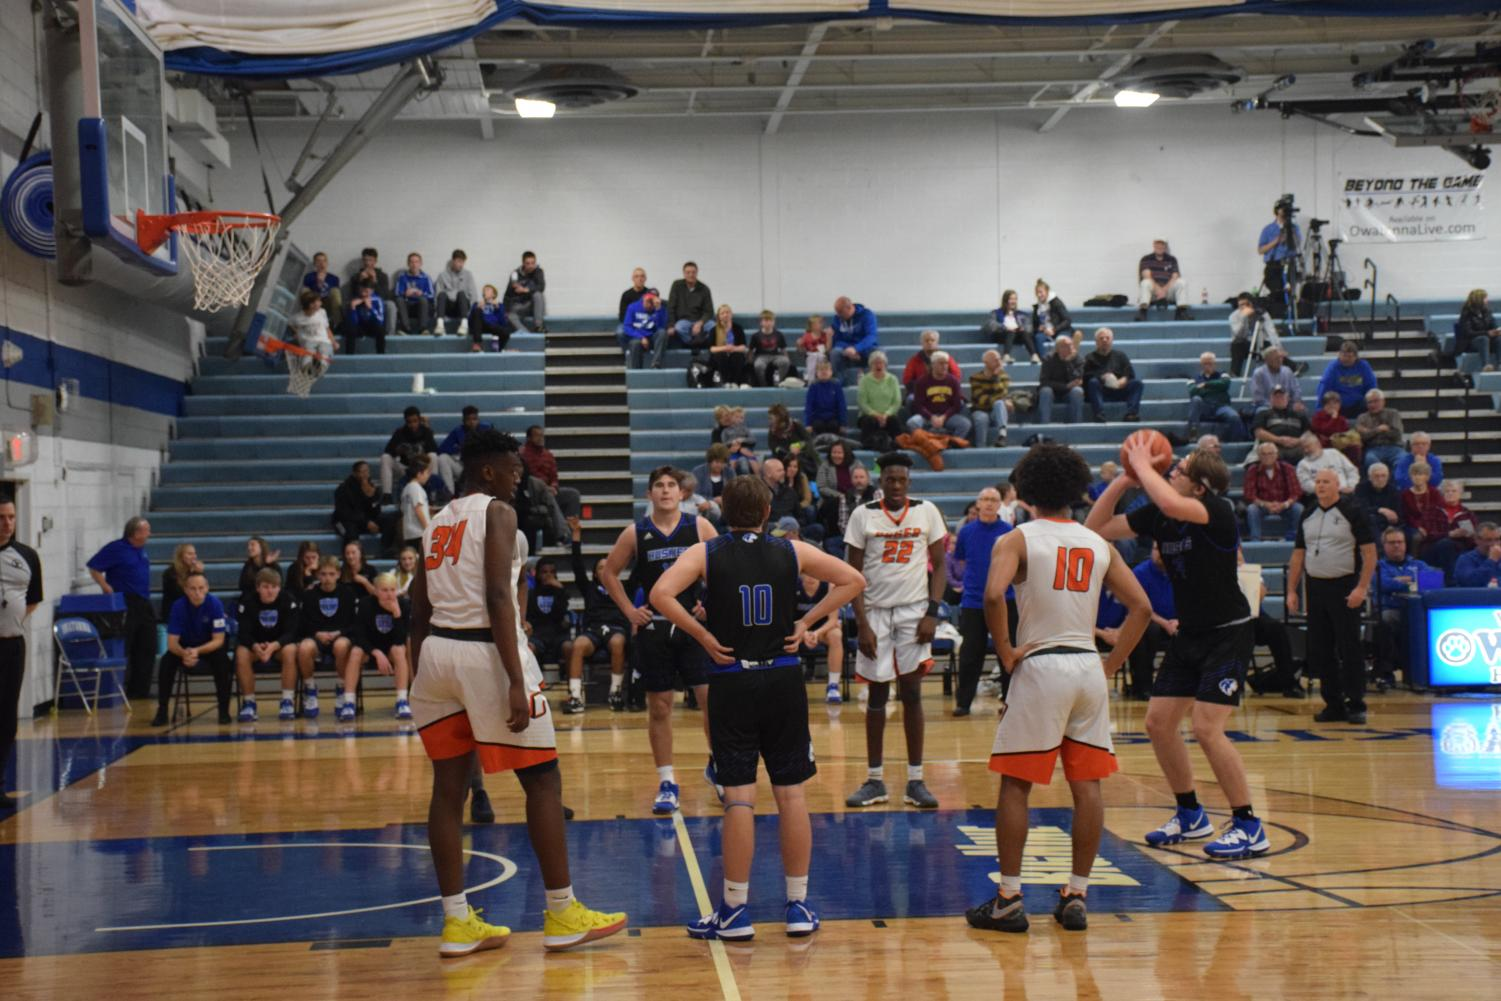 Evan Duschek goes up for a free throw